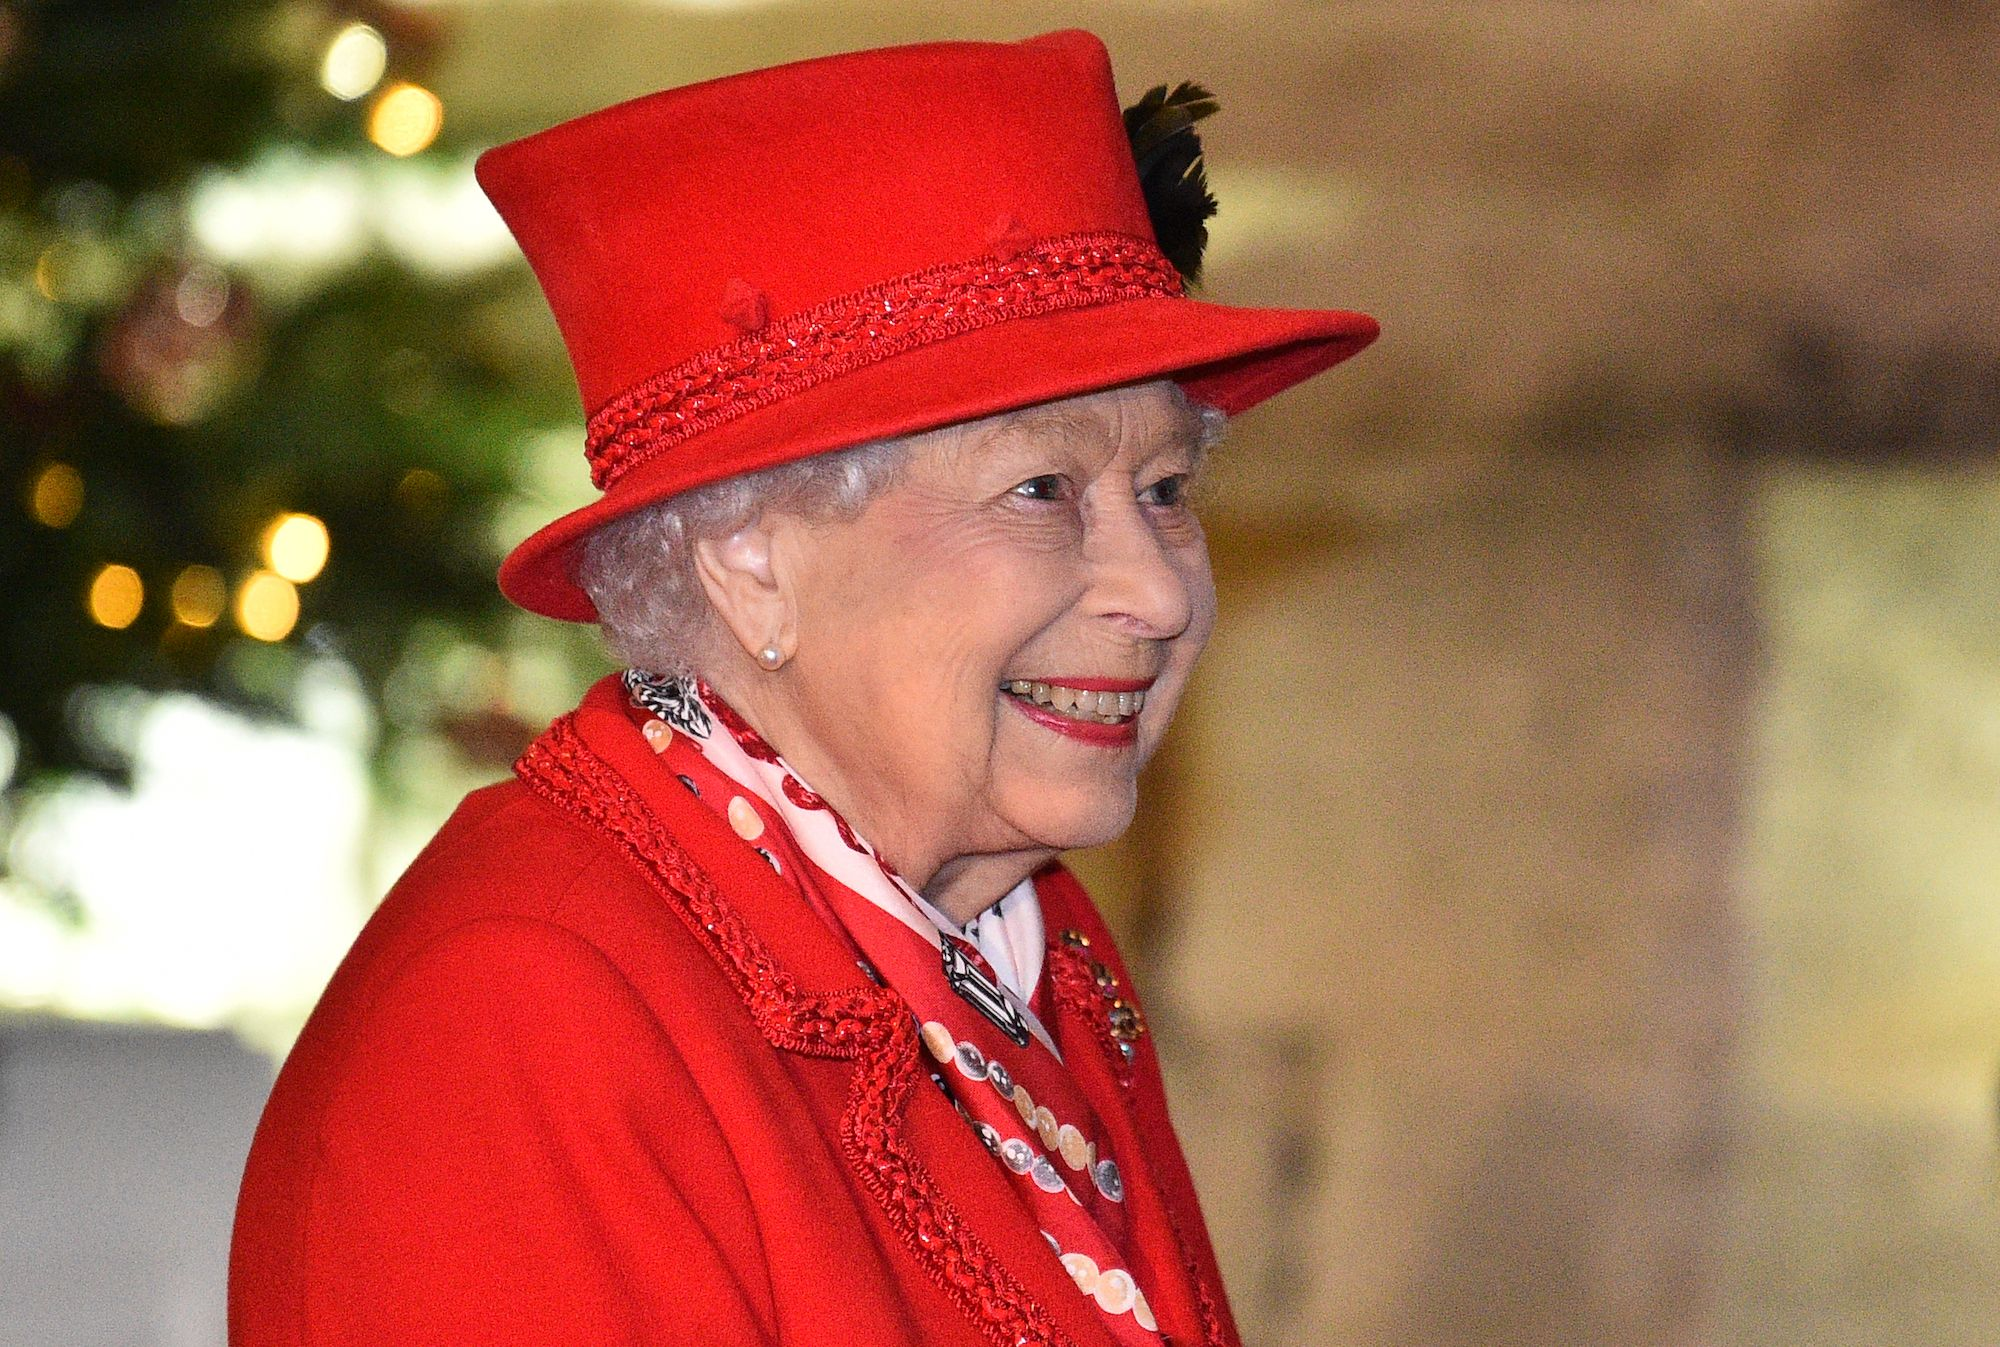 Queen Elizabeth To Make TV Appearance Hours Before Harry and Meghan's Oprah Interview